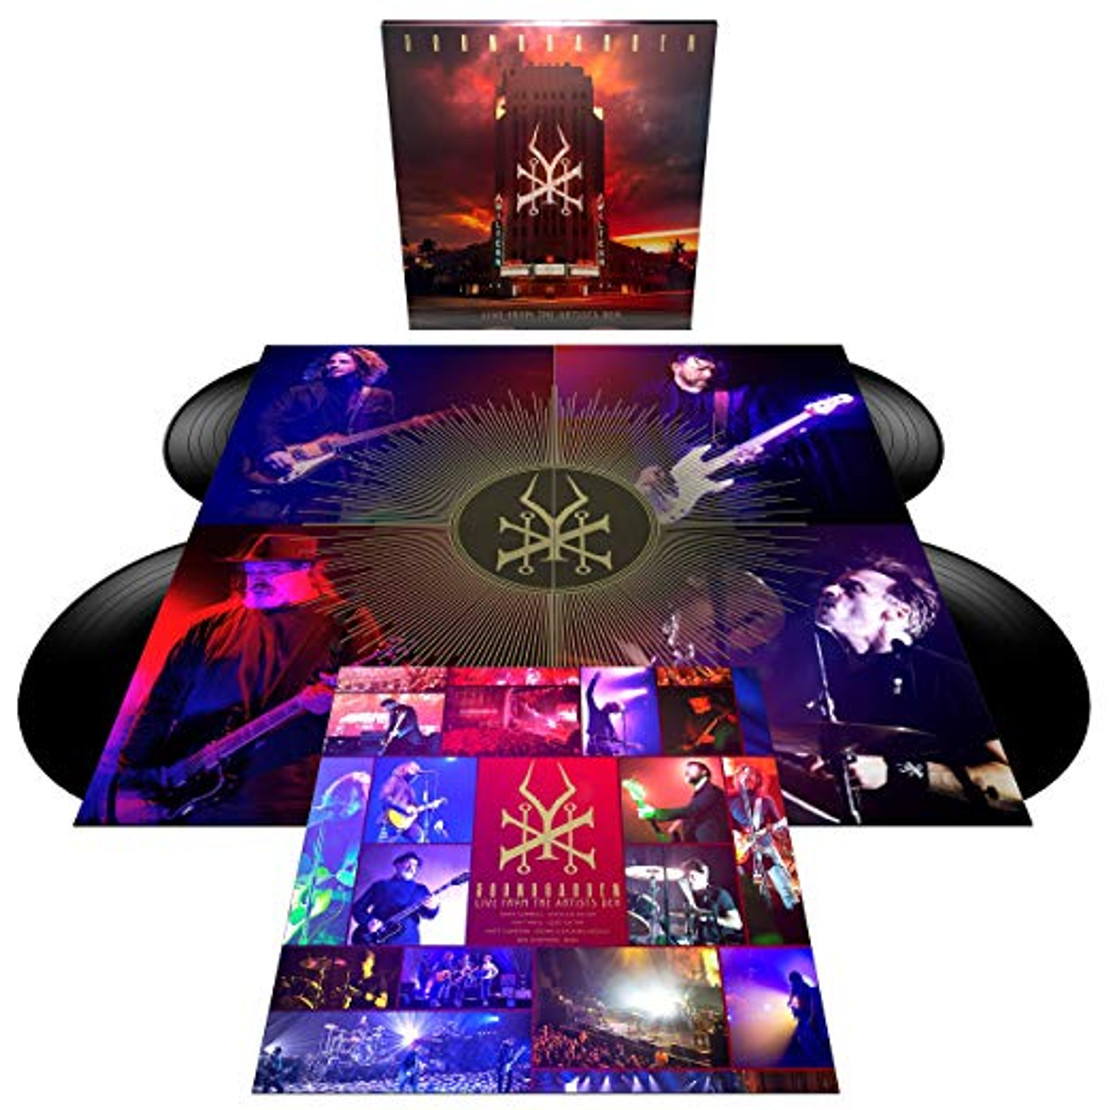 SOUNDGARDEN - Releasing Live From the Artist's Den Super Deluxe Box